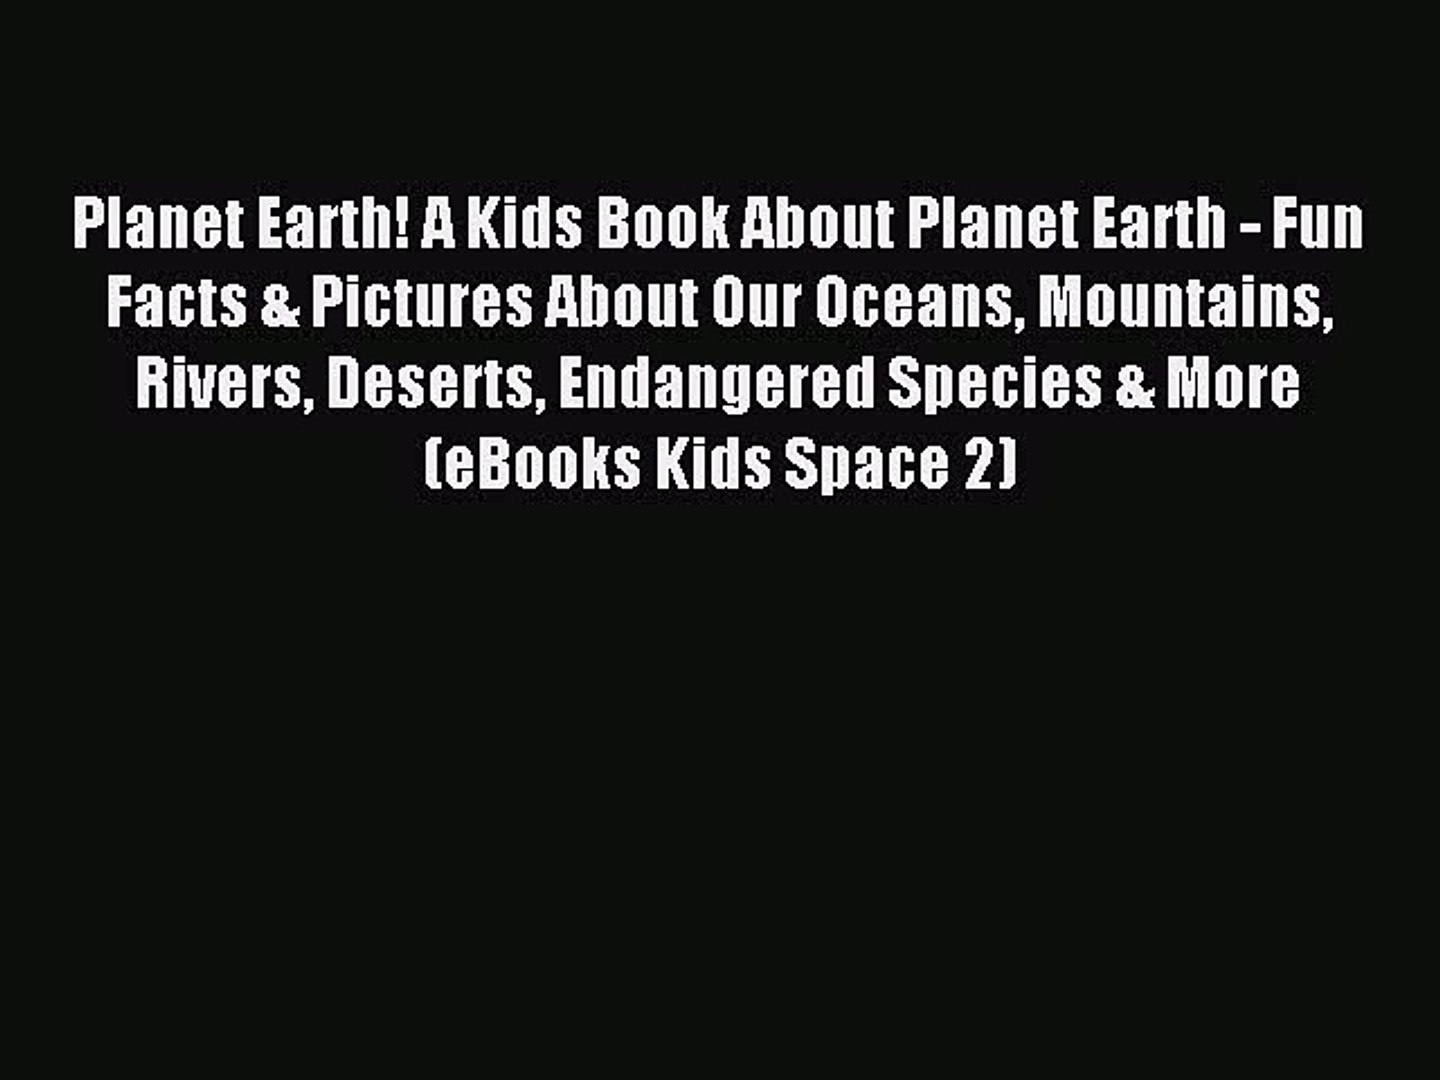 Read Planet Earth! A Kids Book About Planet Earth - Fun Facts & Pictures About Our Oceans Mounta